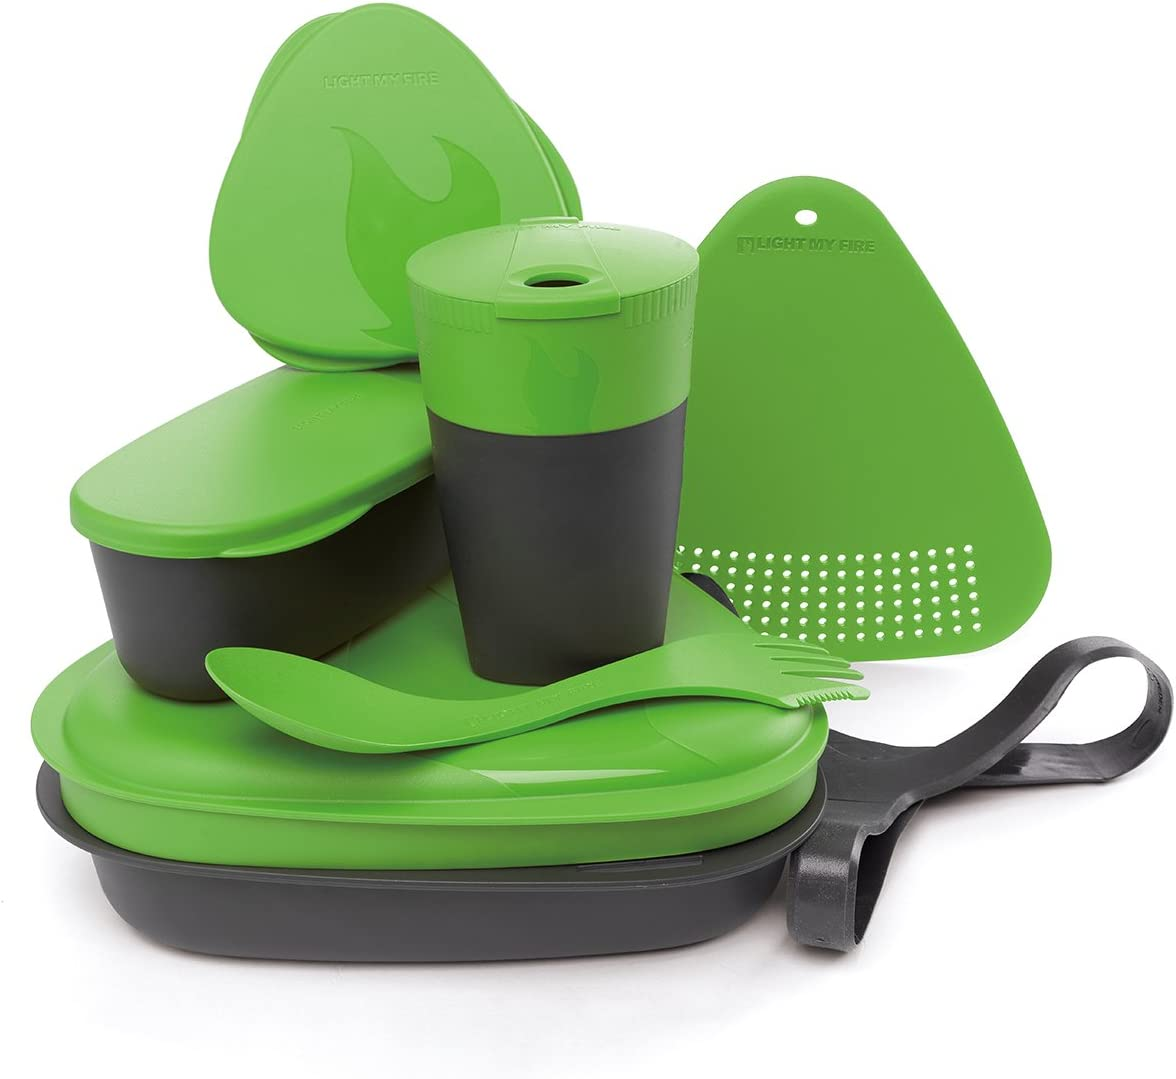 Spork and More Cutting Board Light My Fire 8-Piece BPA-Free Meal Kit 2.0 with Plate Cup Bowl